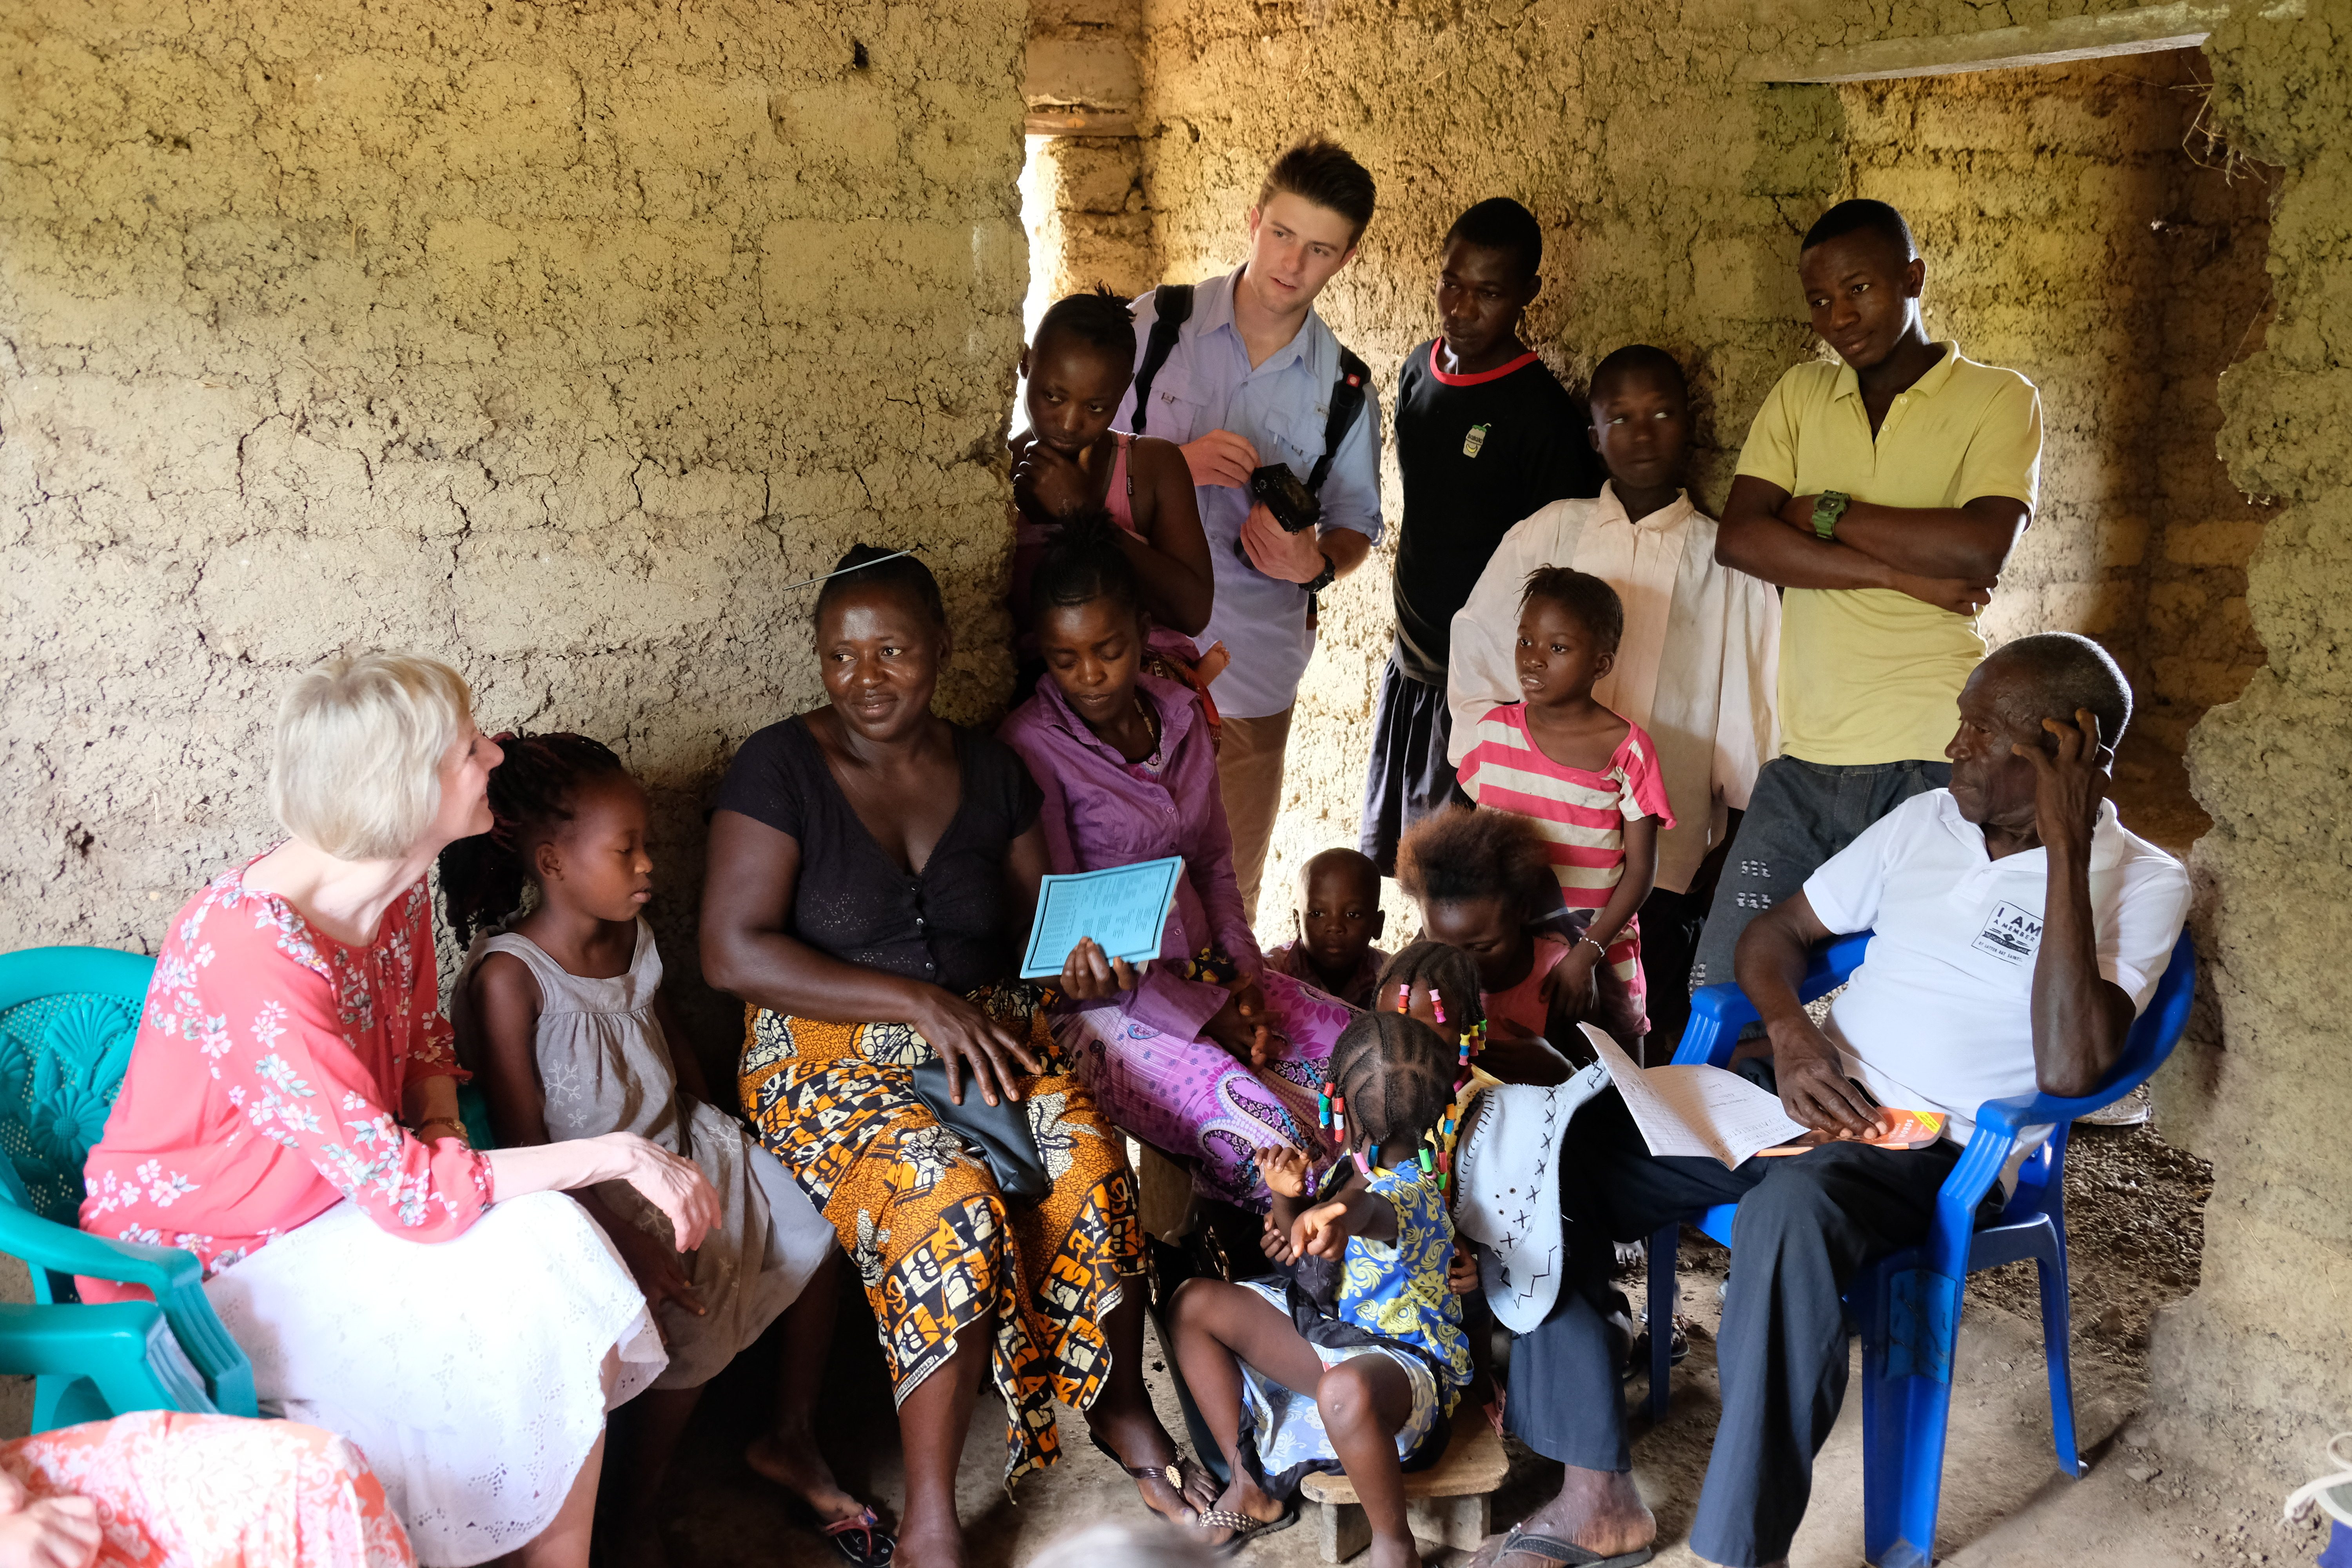 Sister Jean B. Bingham visits with member families in Sierra Leone while visiting to observe the implementation of the Gospel Literacy program. Sister Bingham, Relief Society general president, visited the West African country June 5 through June 16, 2019.